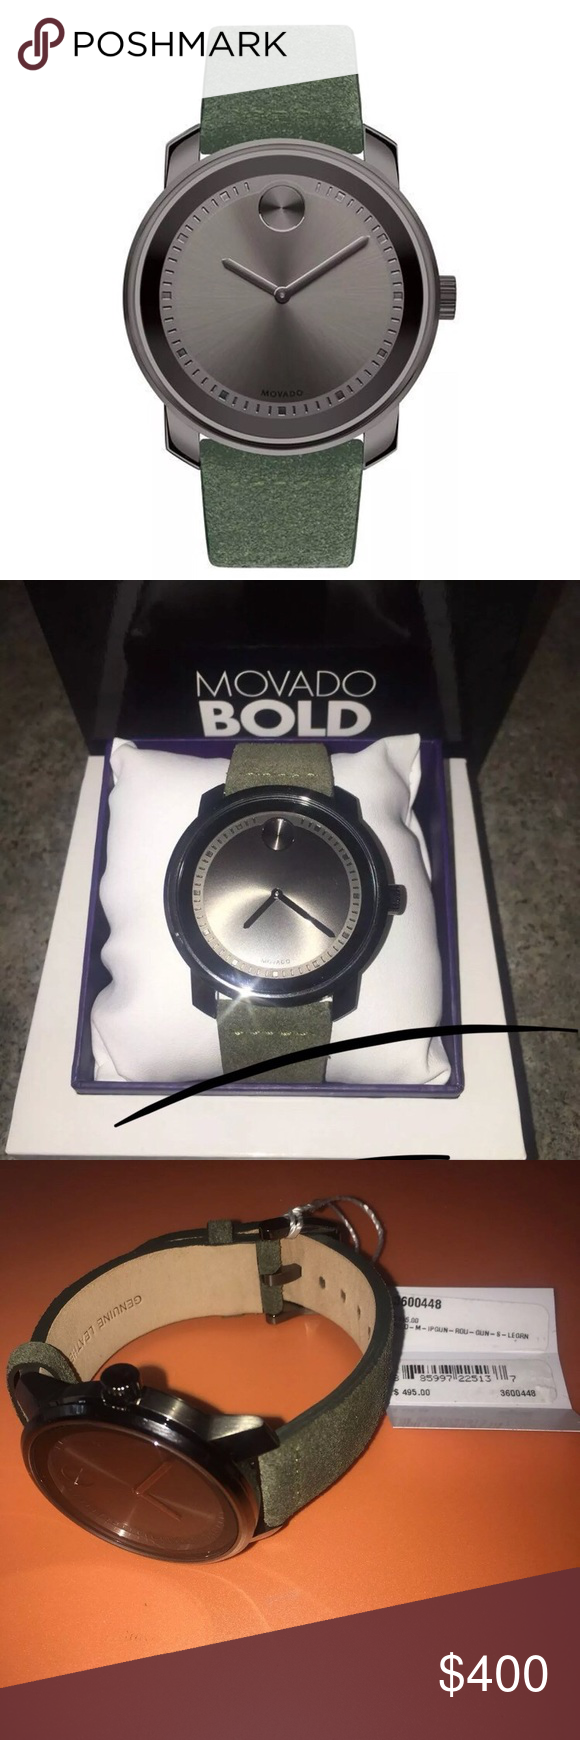 Movado Swiss Bold Suede Leather Strap Movadou0027s Signature Museum Dot Shines  At 12 Ou0027clock On The Minimalist Dial Of A Sleek Round Watch Set On A  Color Soaked ... Nice Ideas